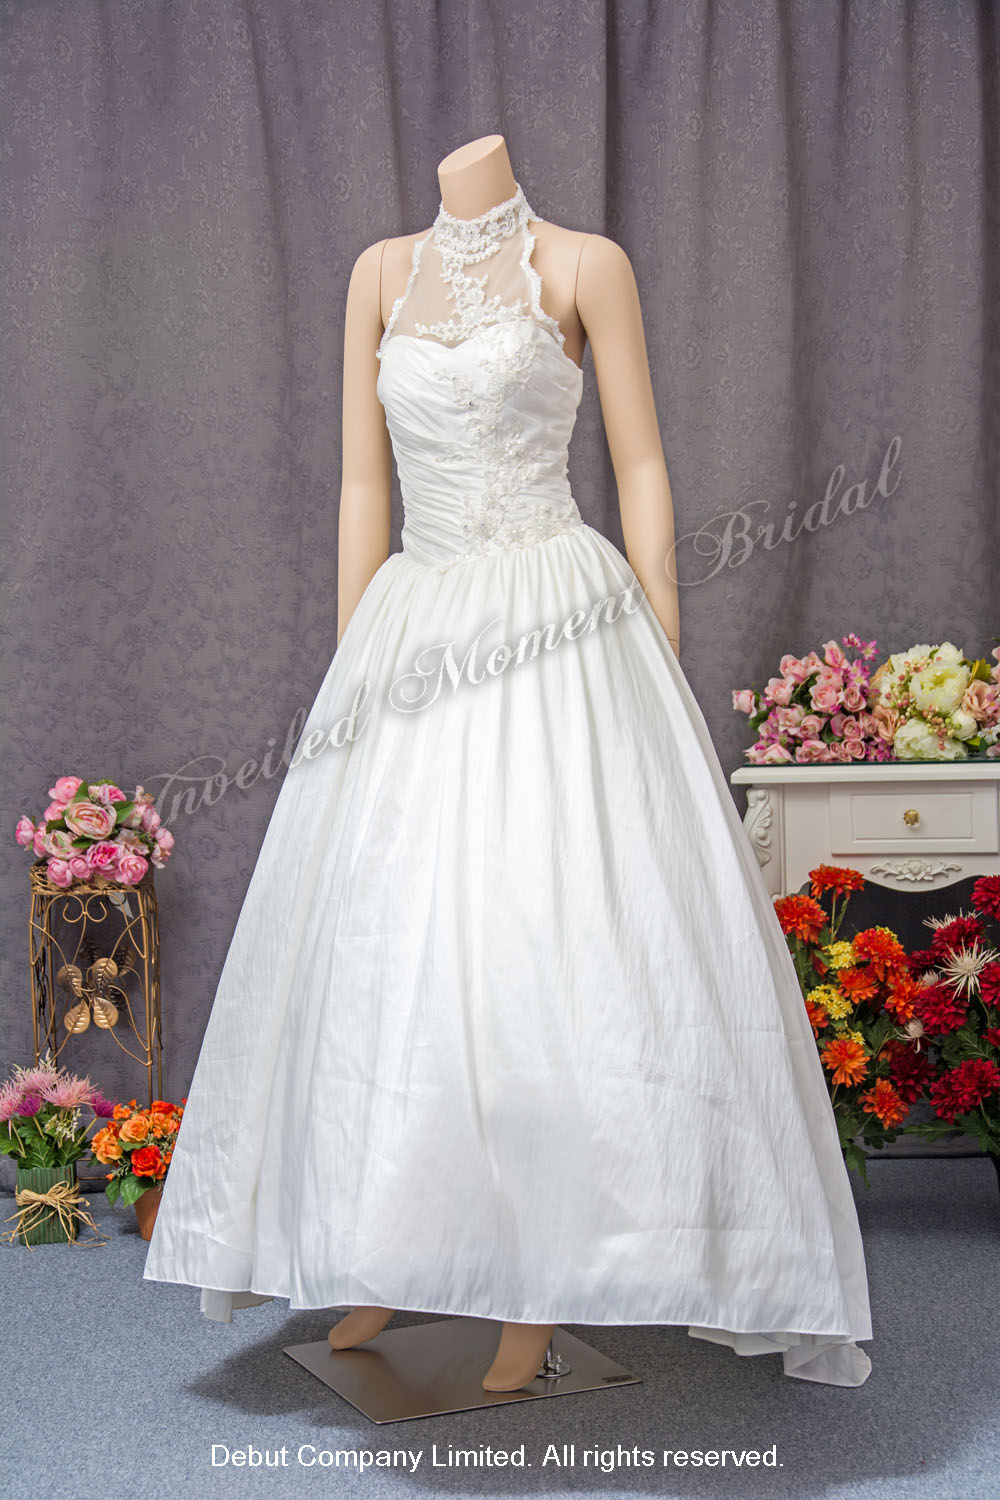 Halter neckline, floor length bridal gown with beaded lace embellishments. 掛頸款蕾絲釘珠婚紗